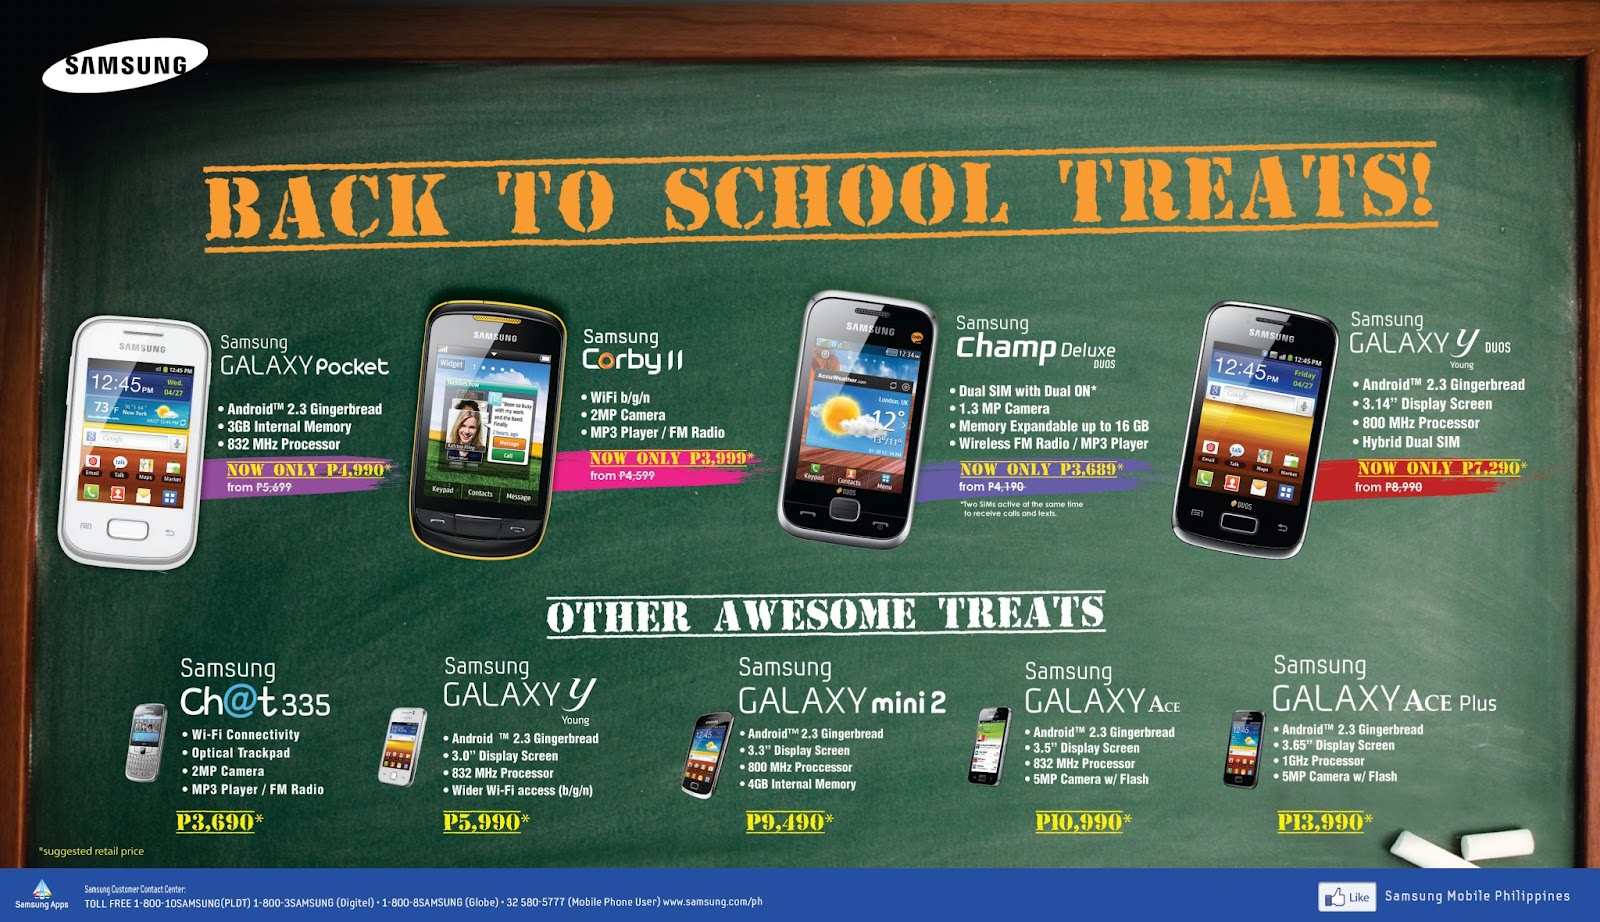 the price check out samsung mobile philippines latest price list of